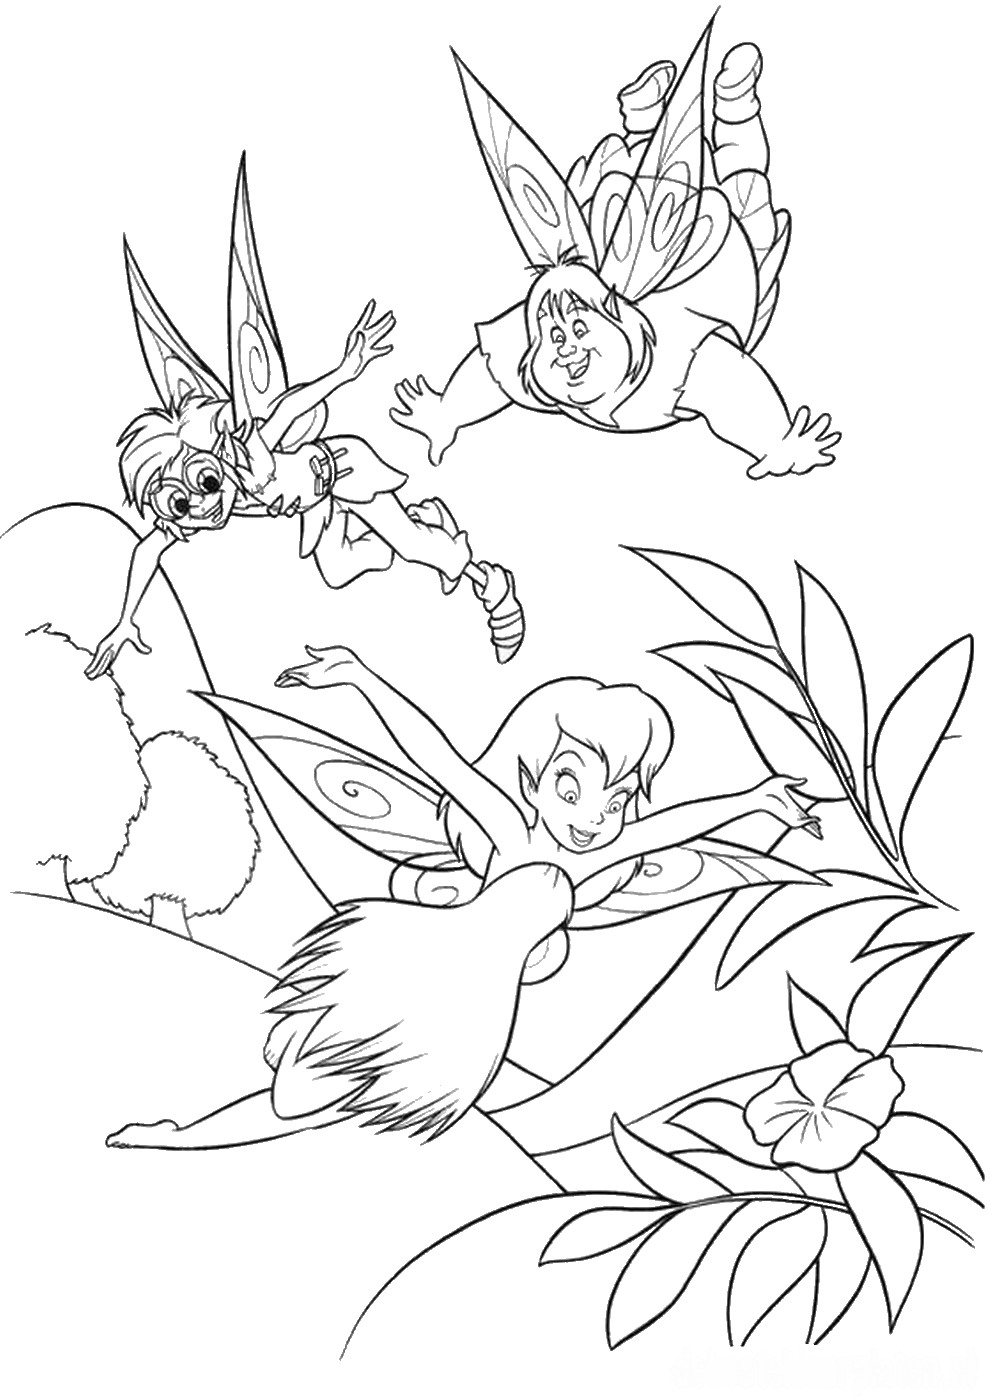 tinker bell coloring pages tinkerbell coloring pages download and print tinkerbell coloring bell pages tinker